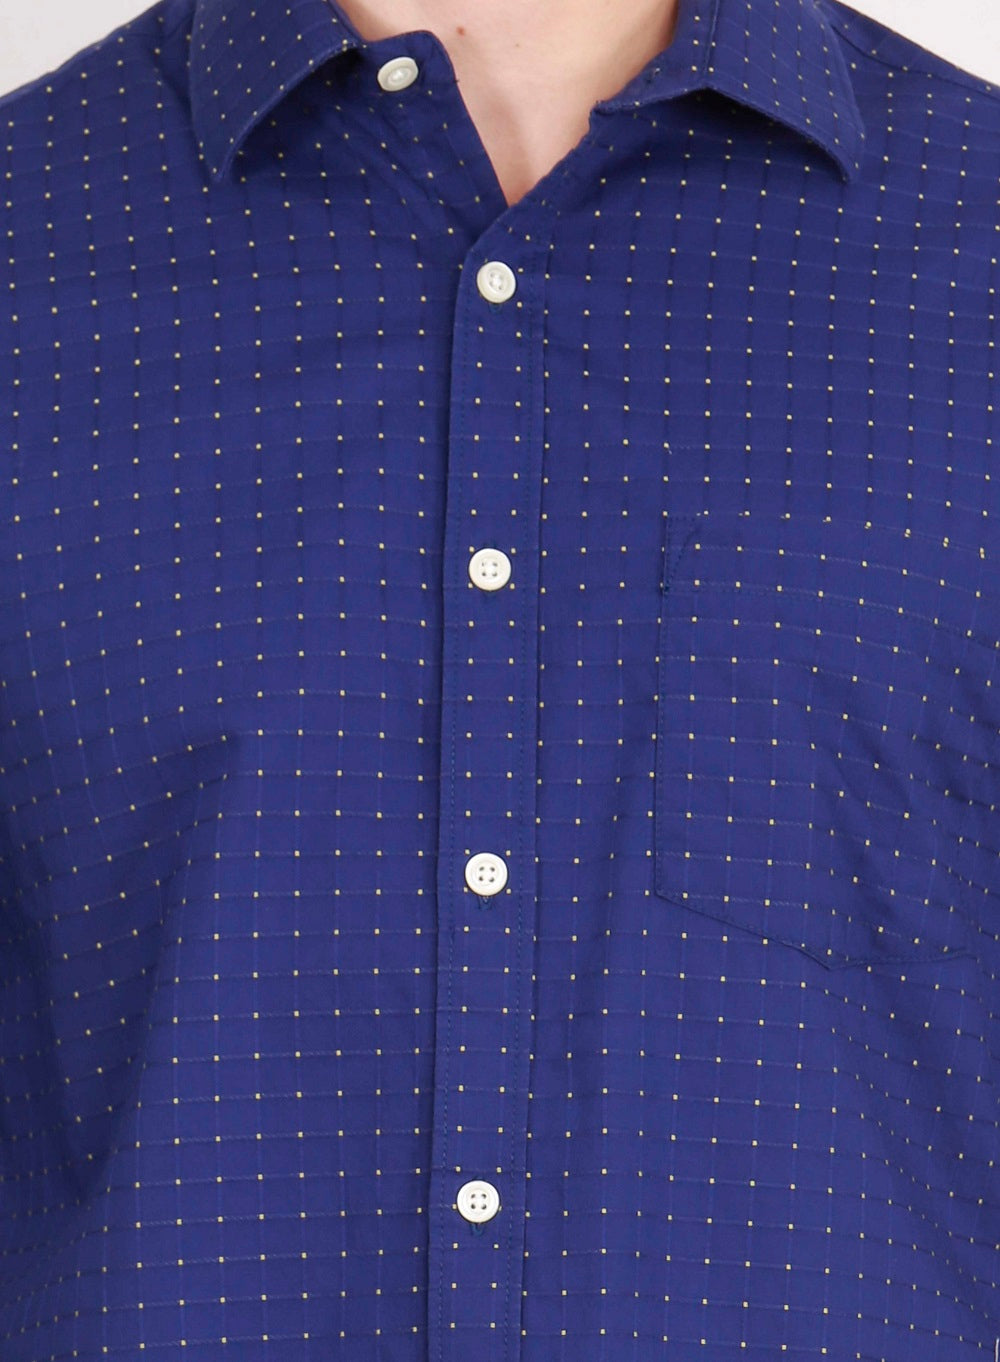 IMYOUNG Blue Checked Slim Fit Casual Shirt